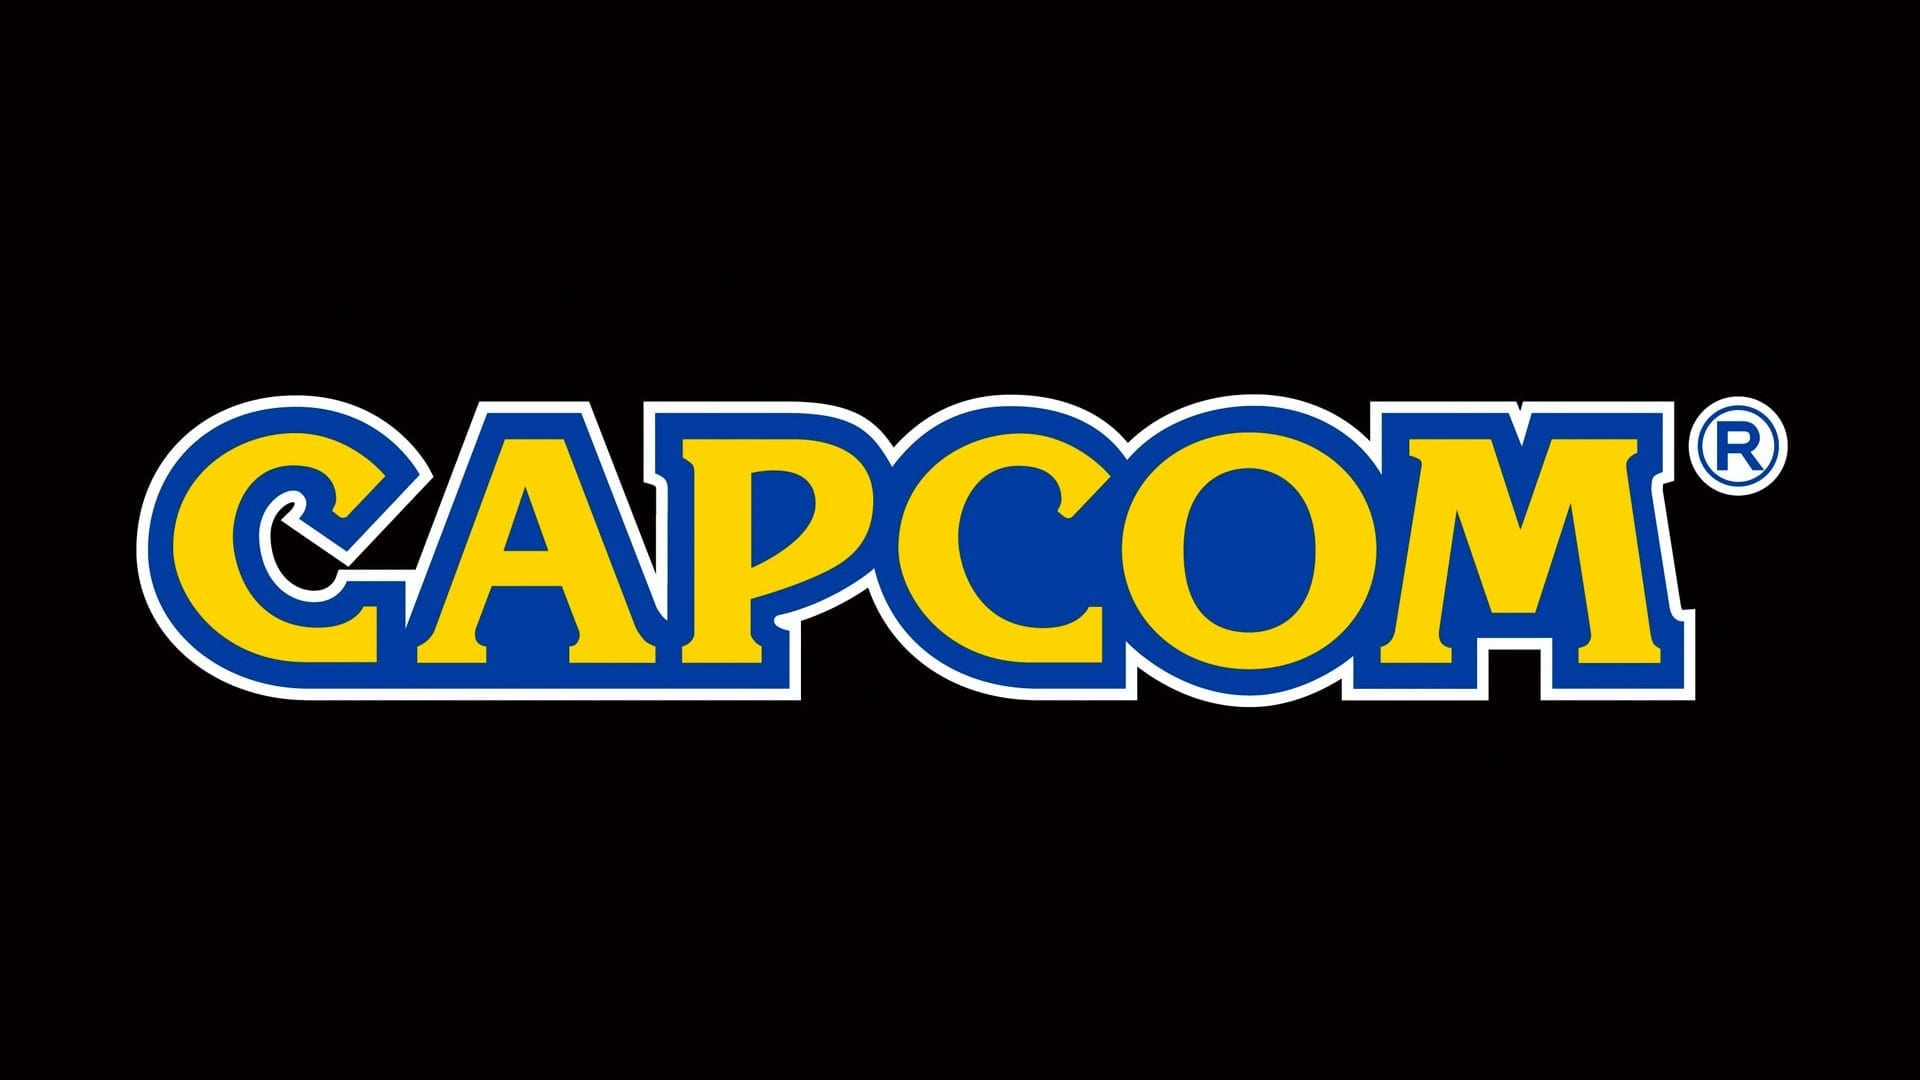 Capcom Reviews Knowledge Breach That Uncovered Private Info 1